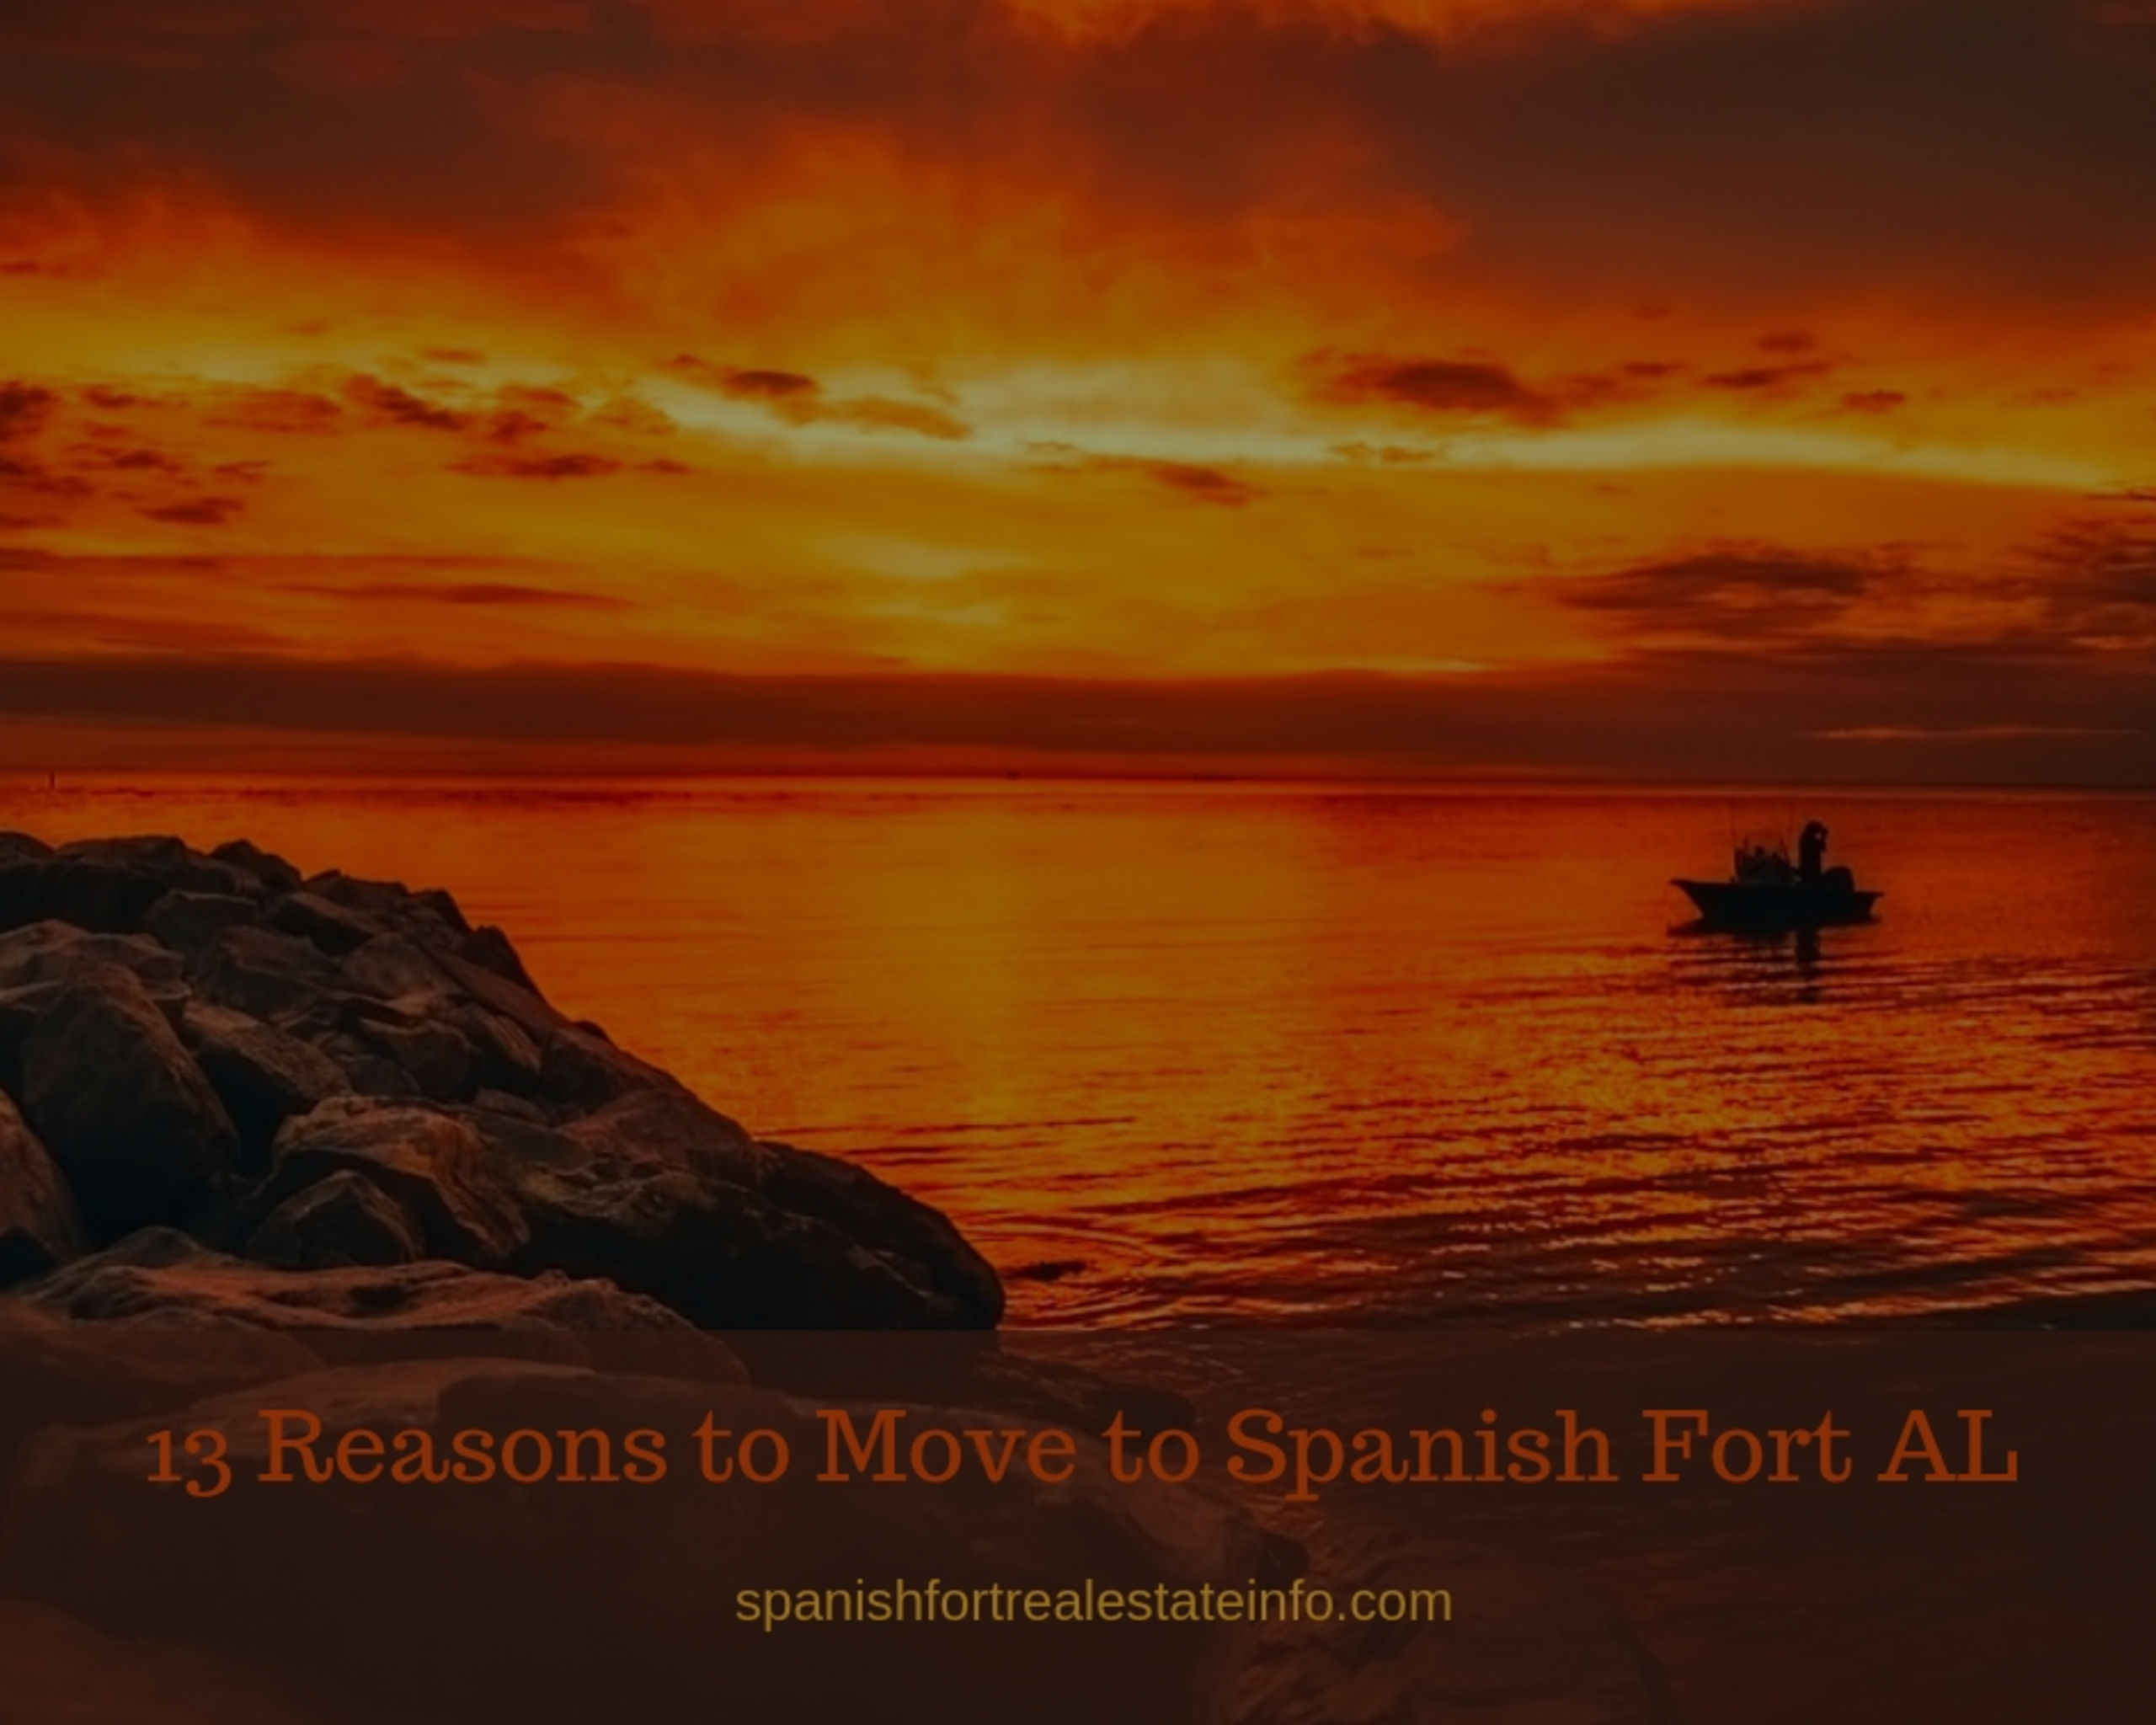 13 Reasons to Move to Spanish Fort